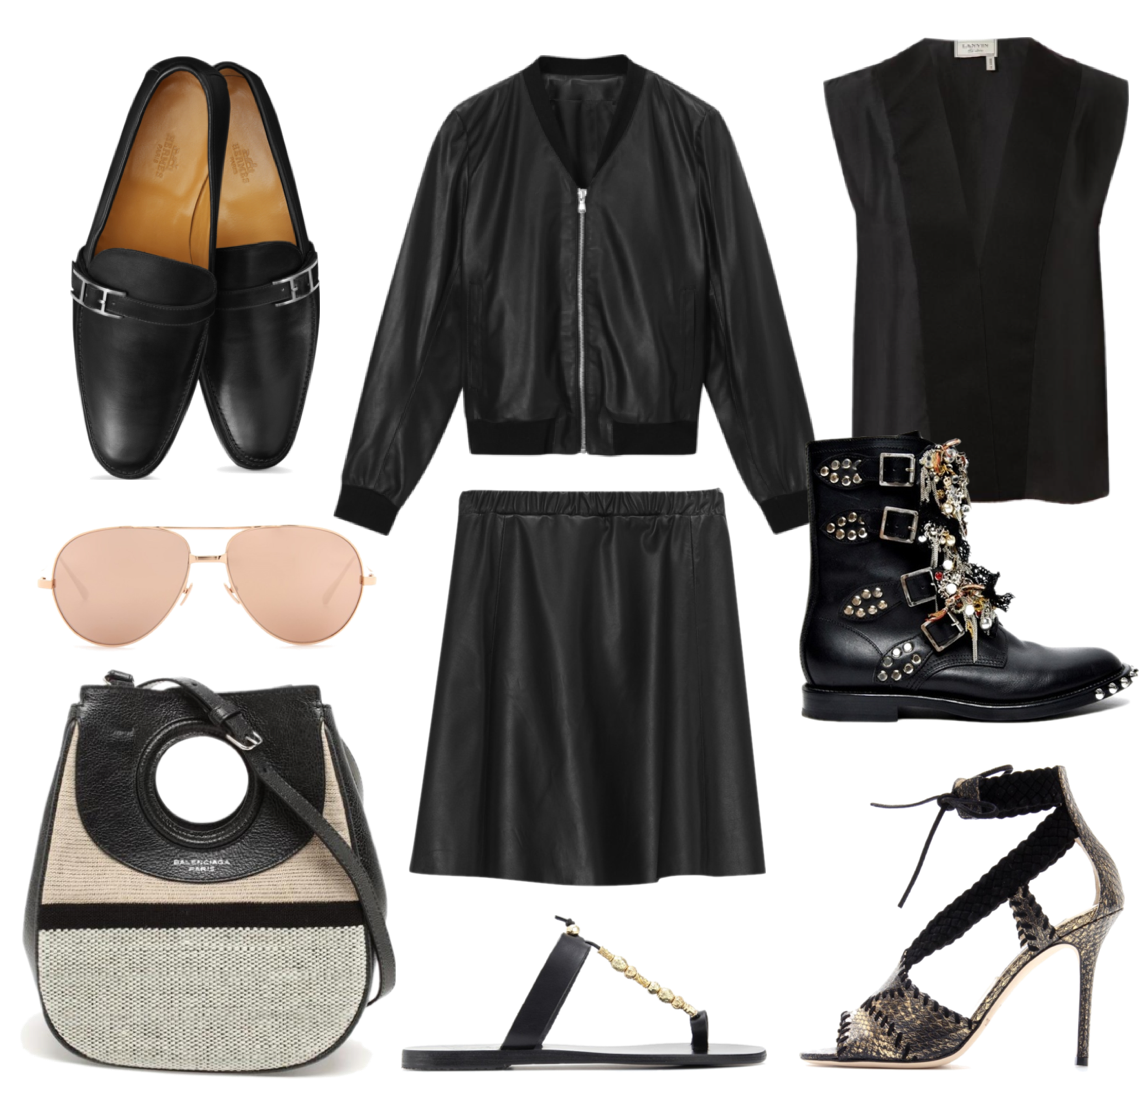 Wish List - all black Balenciaga, Filippa K, Hermes, Linda Farrow, Saint Laurent, Lanvin